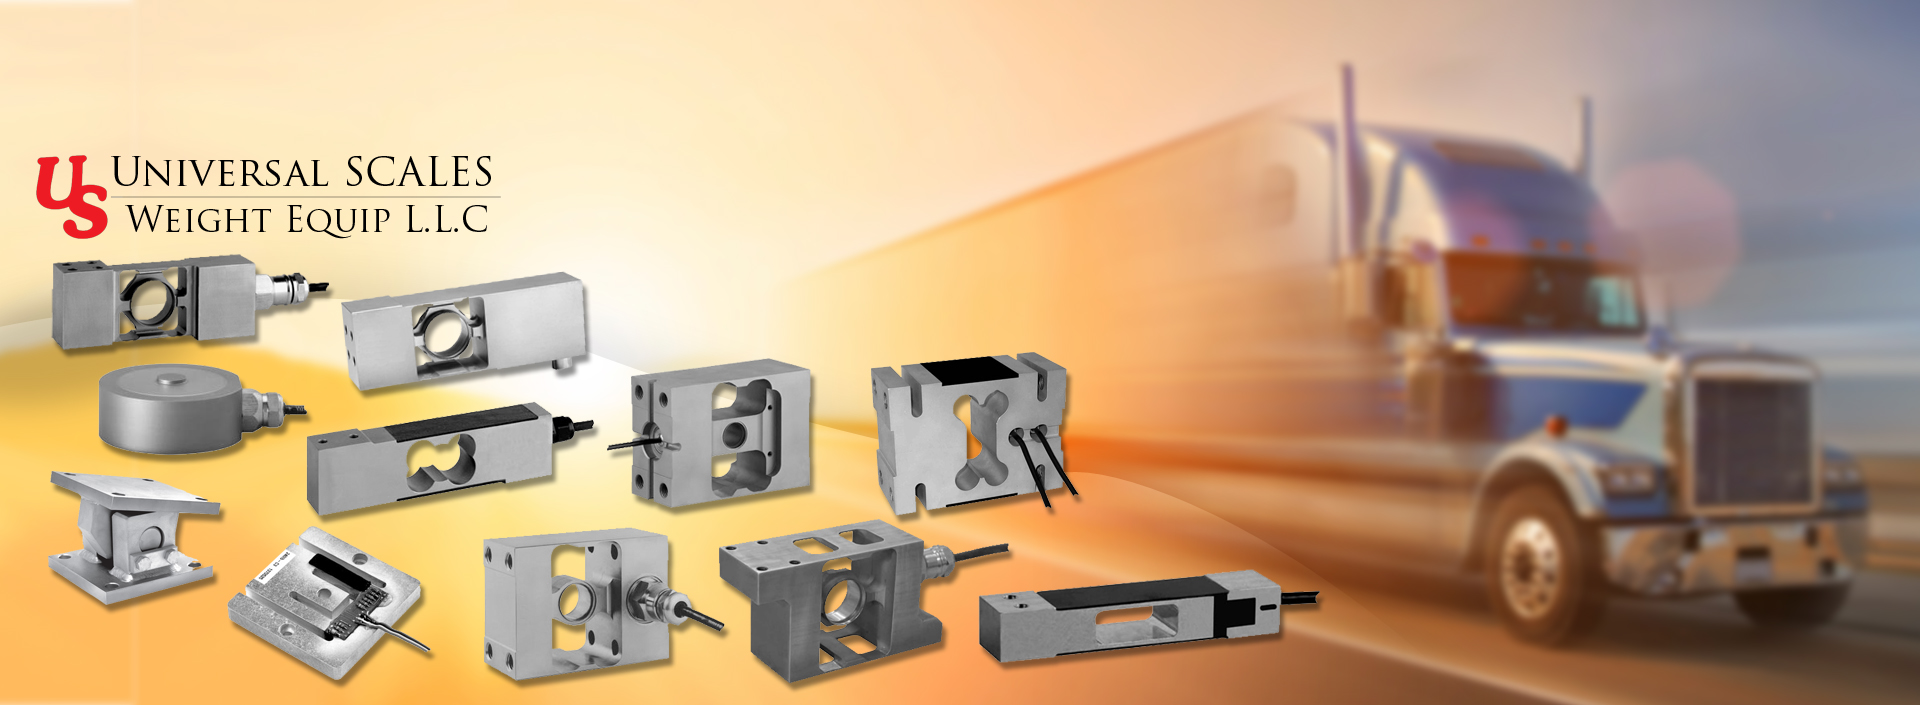 load-cell-banner-2-resize